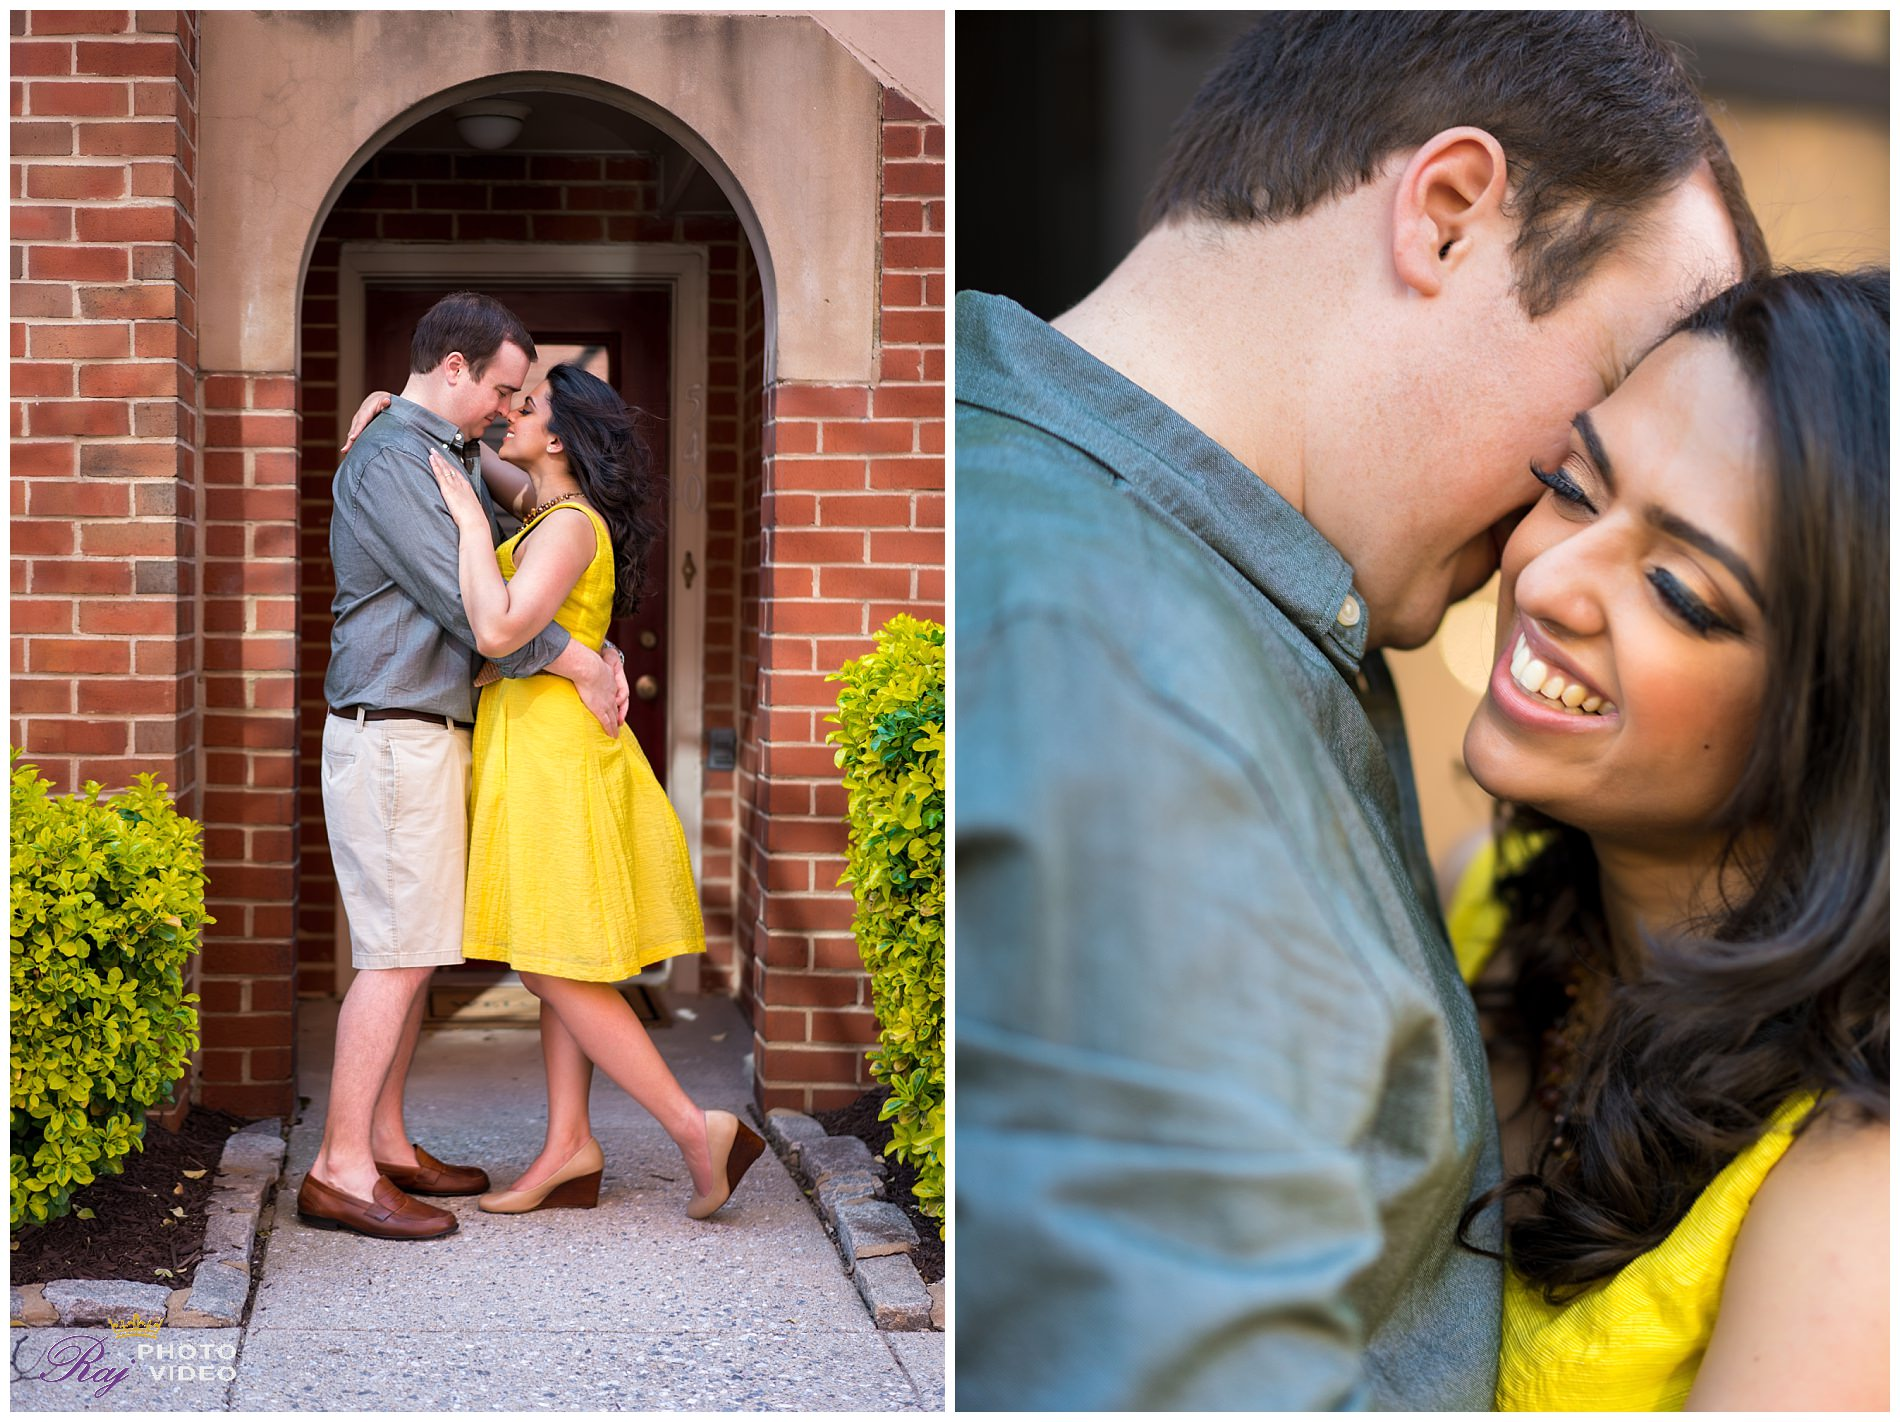 Baltimore-Maryland-Engagement-Shoot-Aditi-Peter-8.jpg